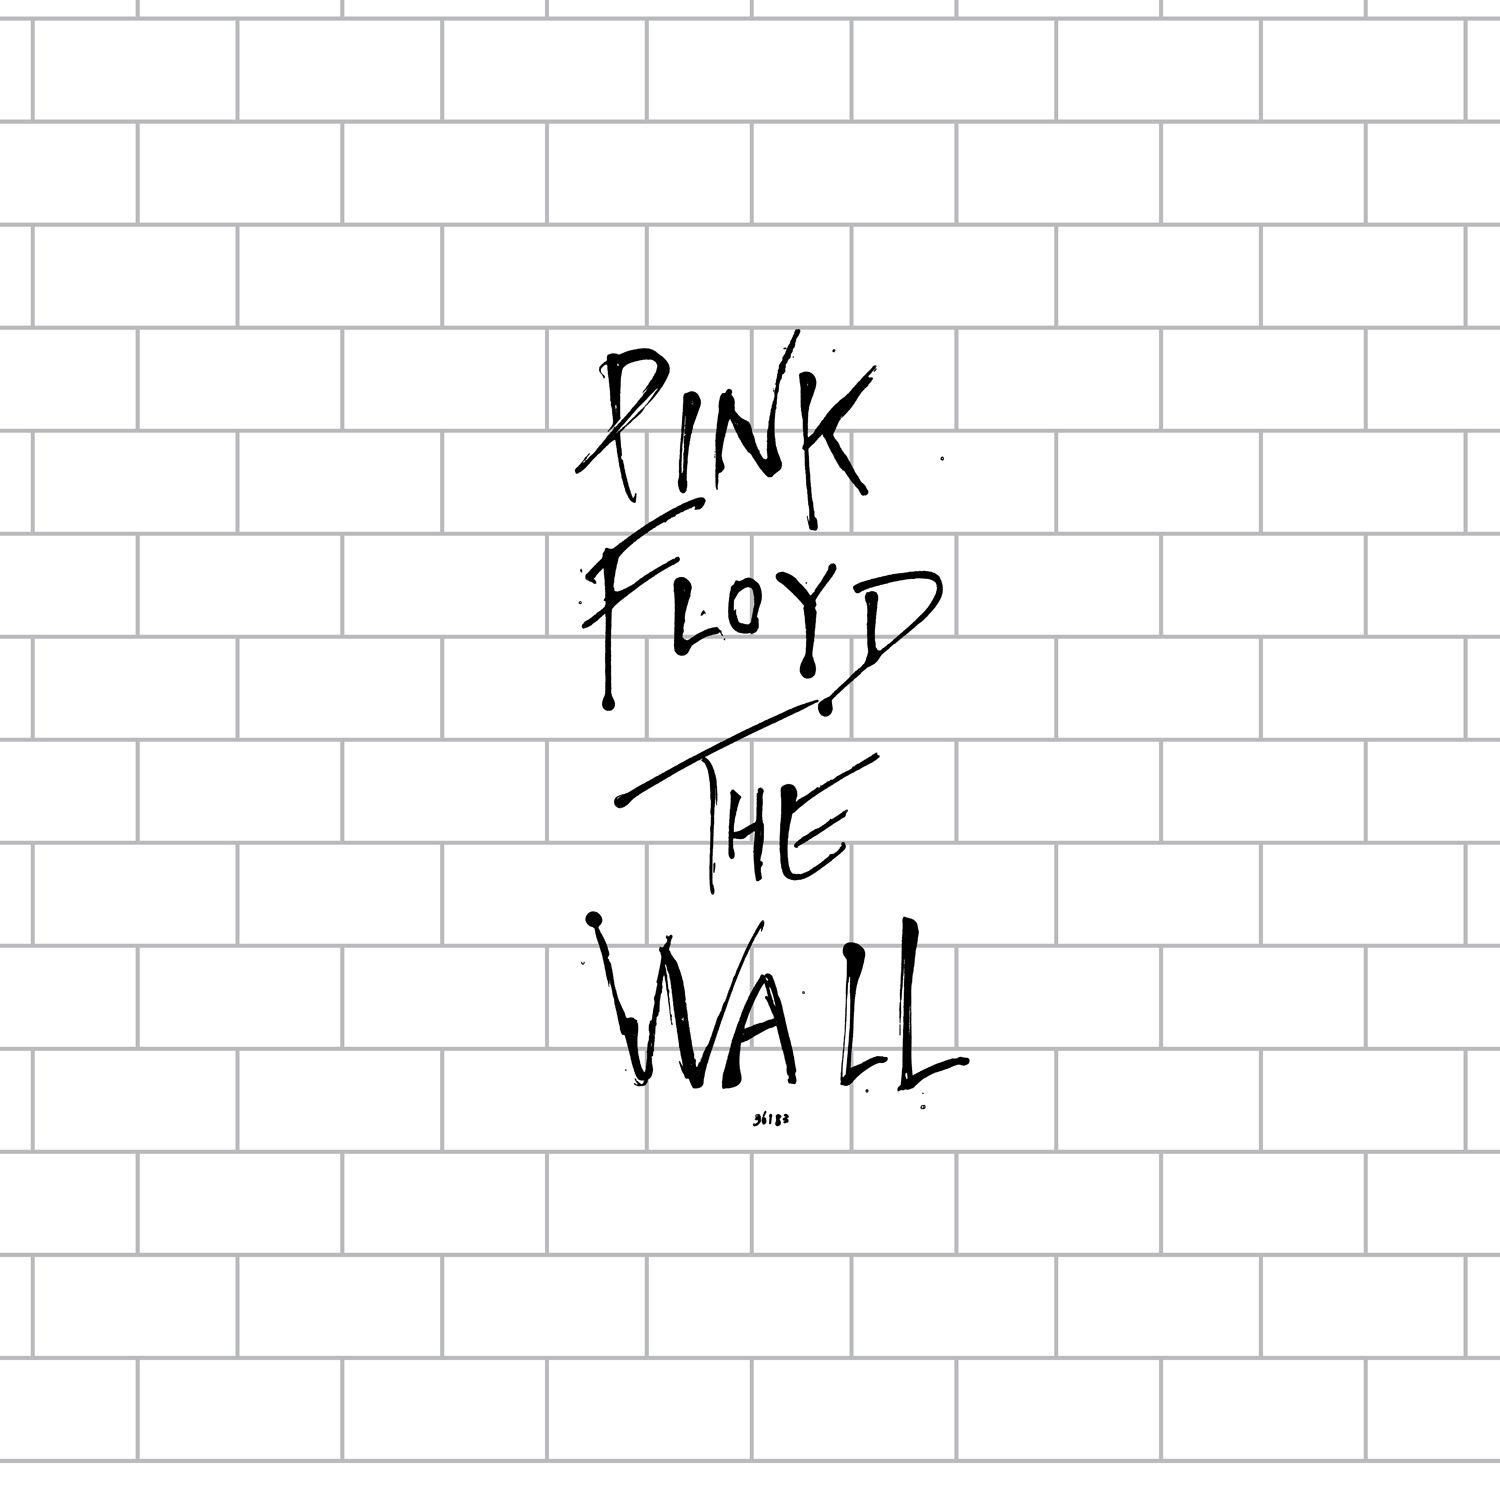 pink floyd the wall 1979 por gerald scarfe design on pink floyd the wall id=35697